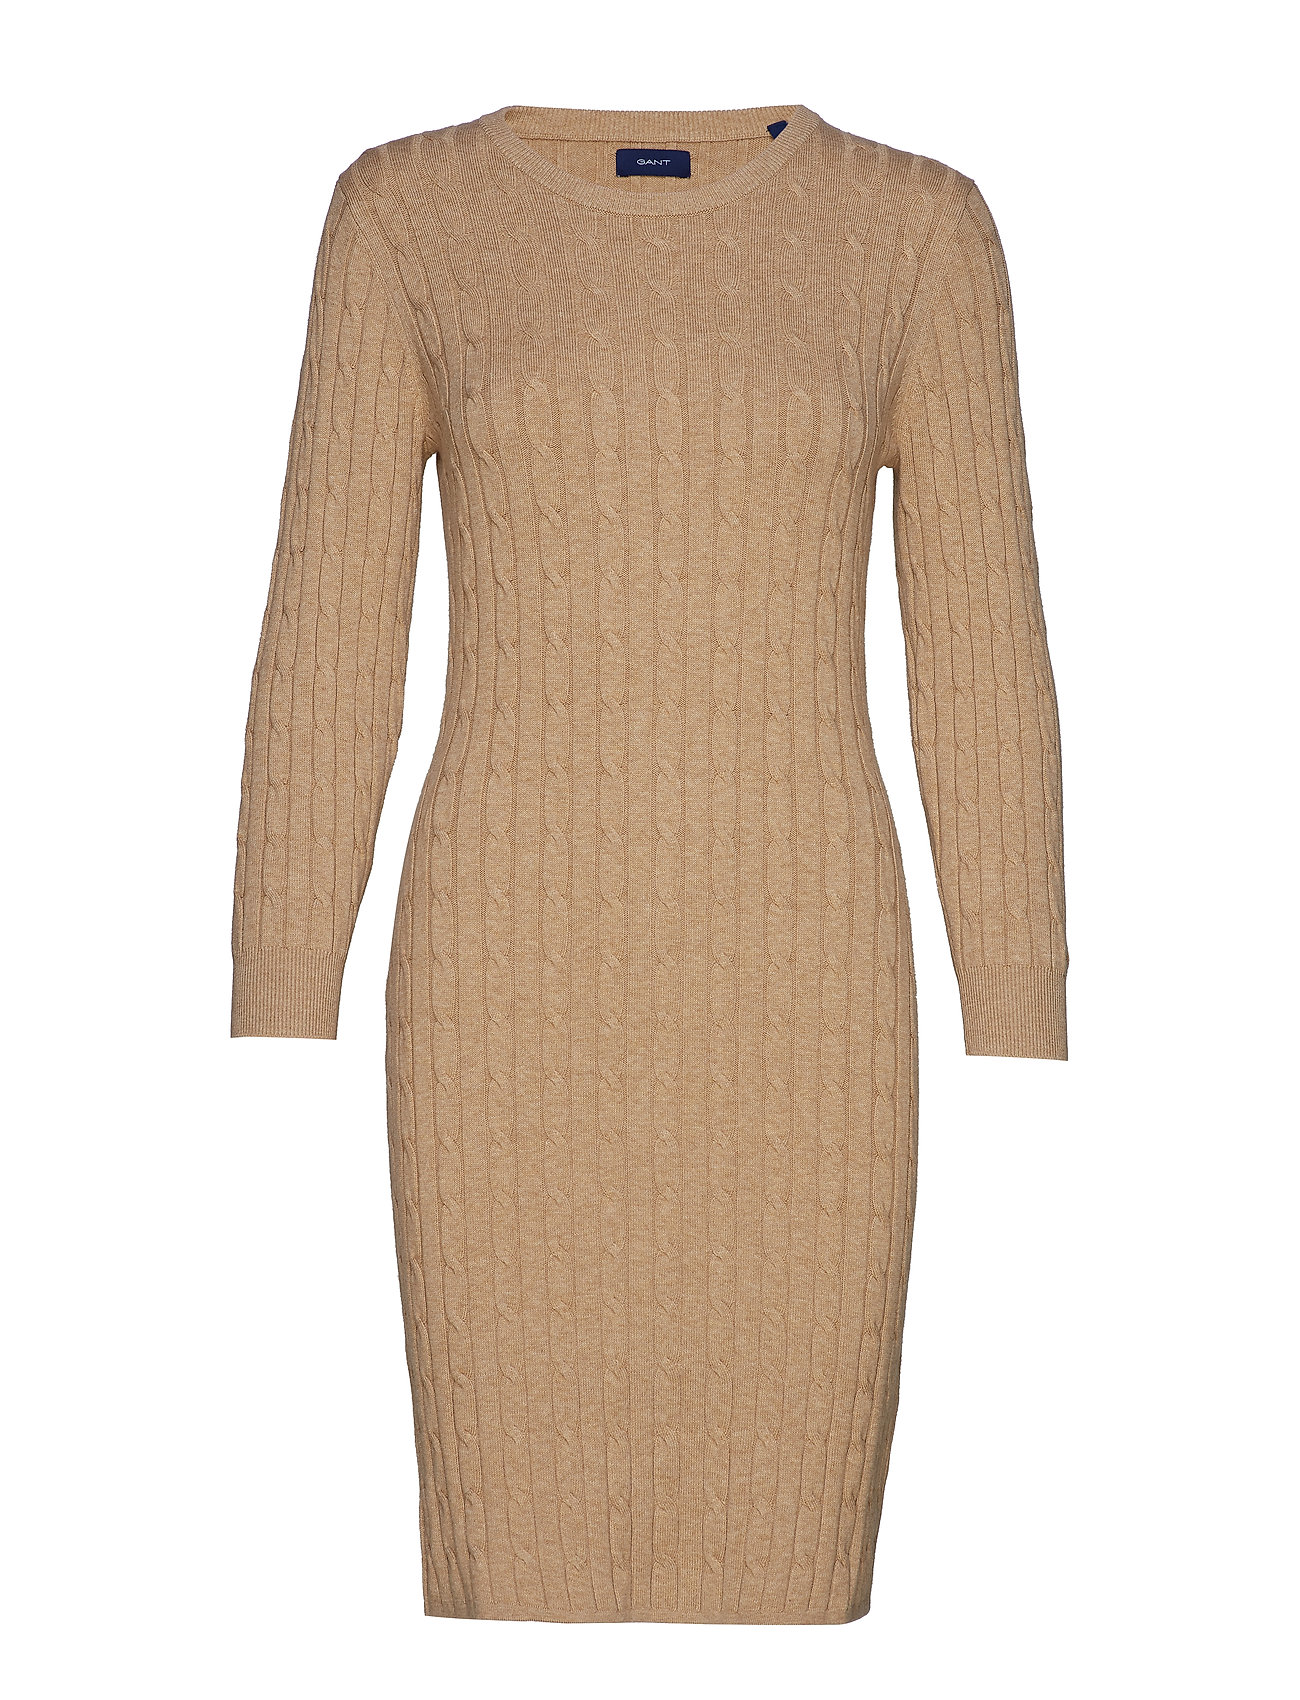 Gant STRETCH COTTON CABLE DRESS - SAND MELANGE